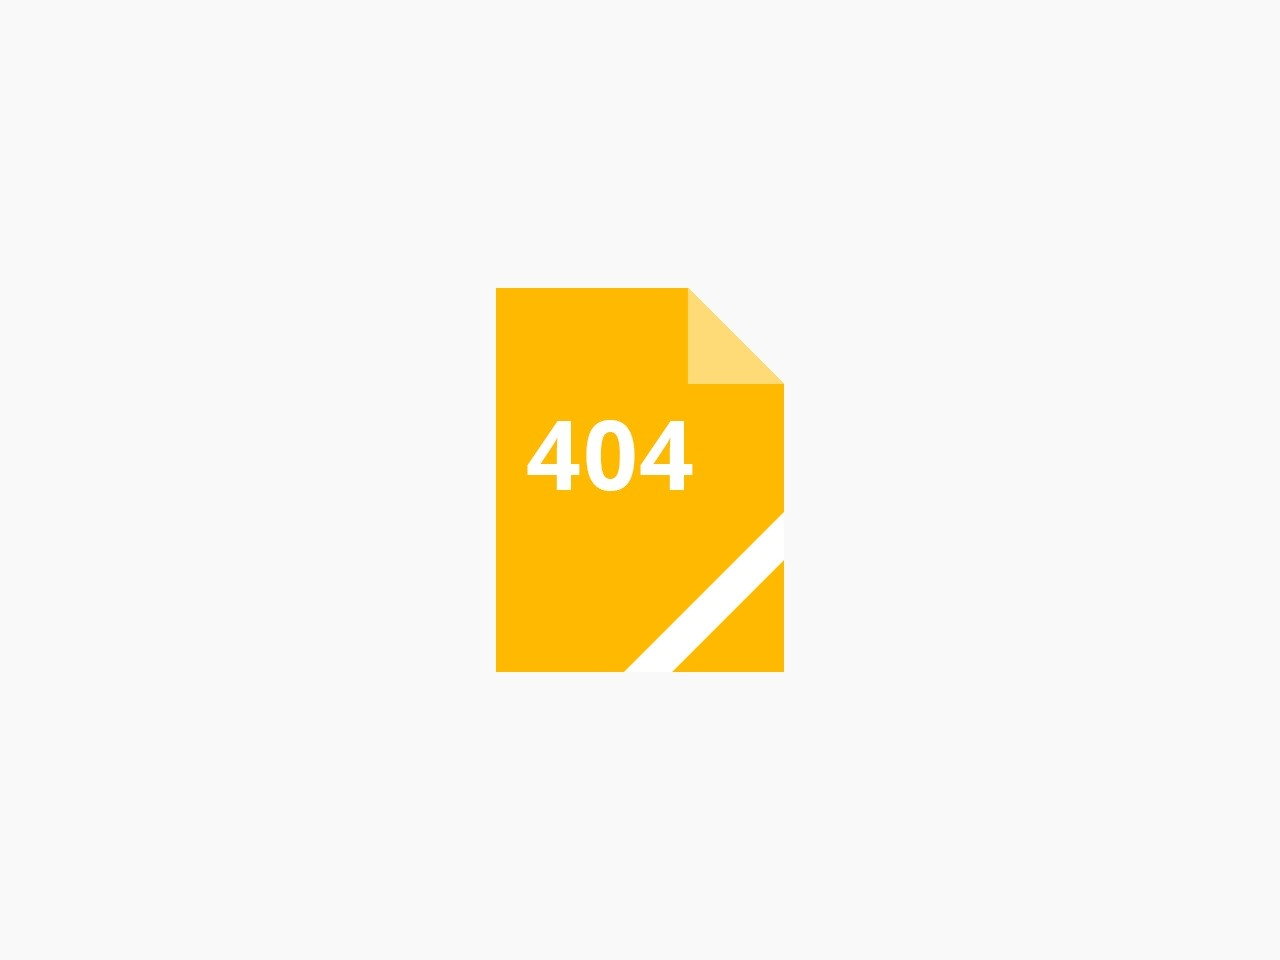 Bitcoin Cash [BCH] halving might lead to major security issues in its network, claims report